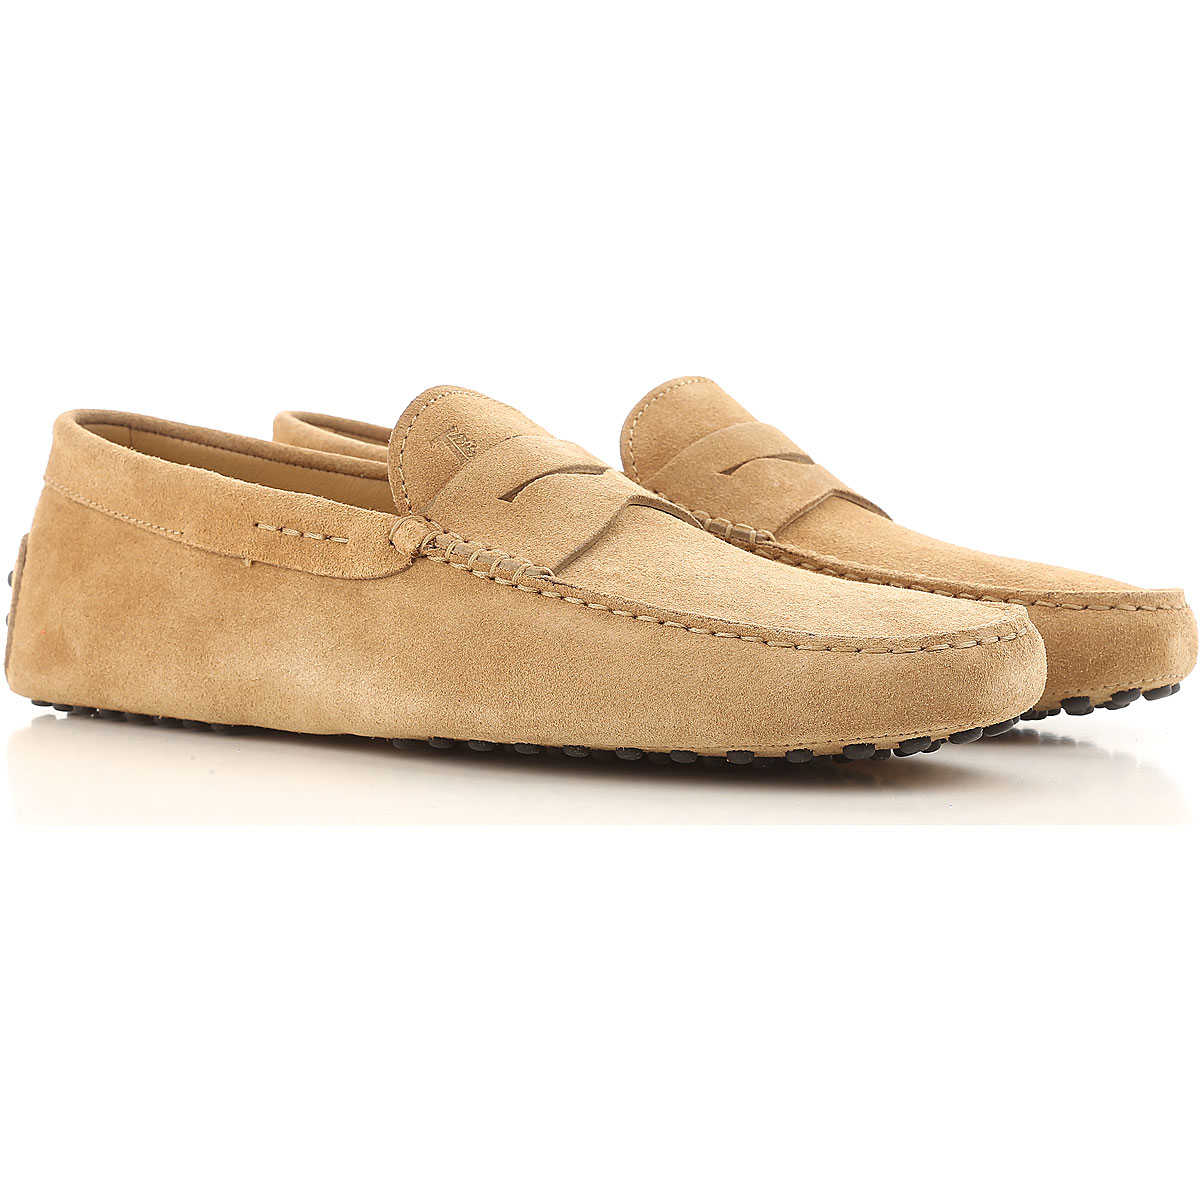 Tods Loafers for Men cookie USA - GOOFASH